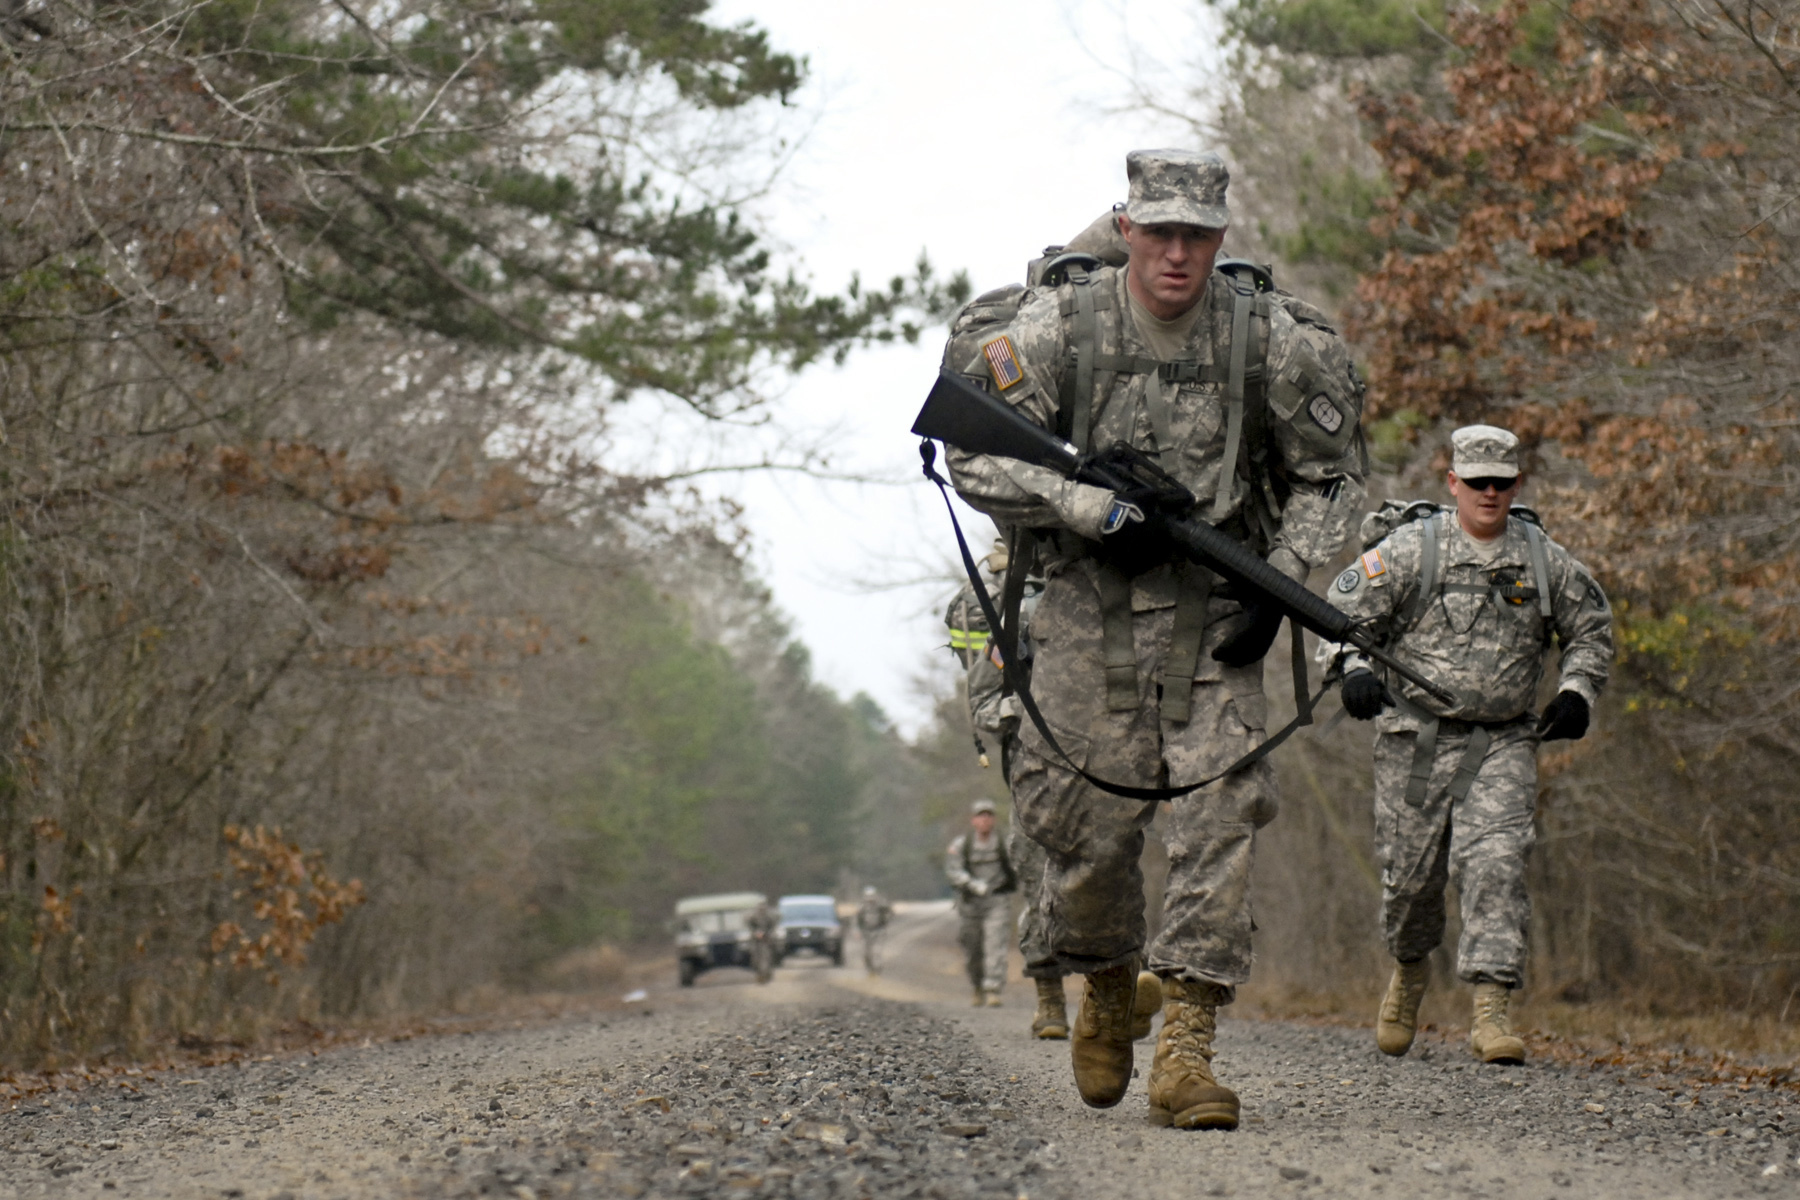 File:Defense.gov News Photo 120107-A-EZ357-019 - U.S. Army Cpl ...